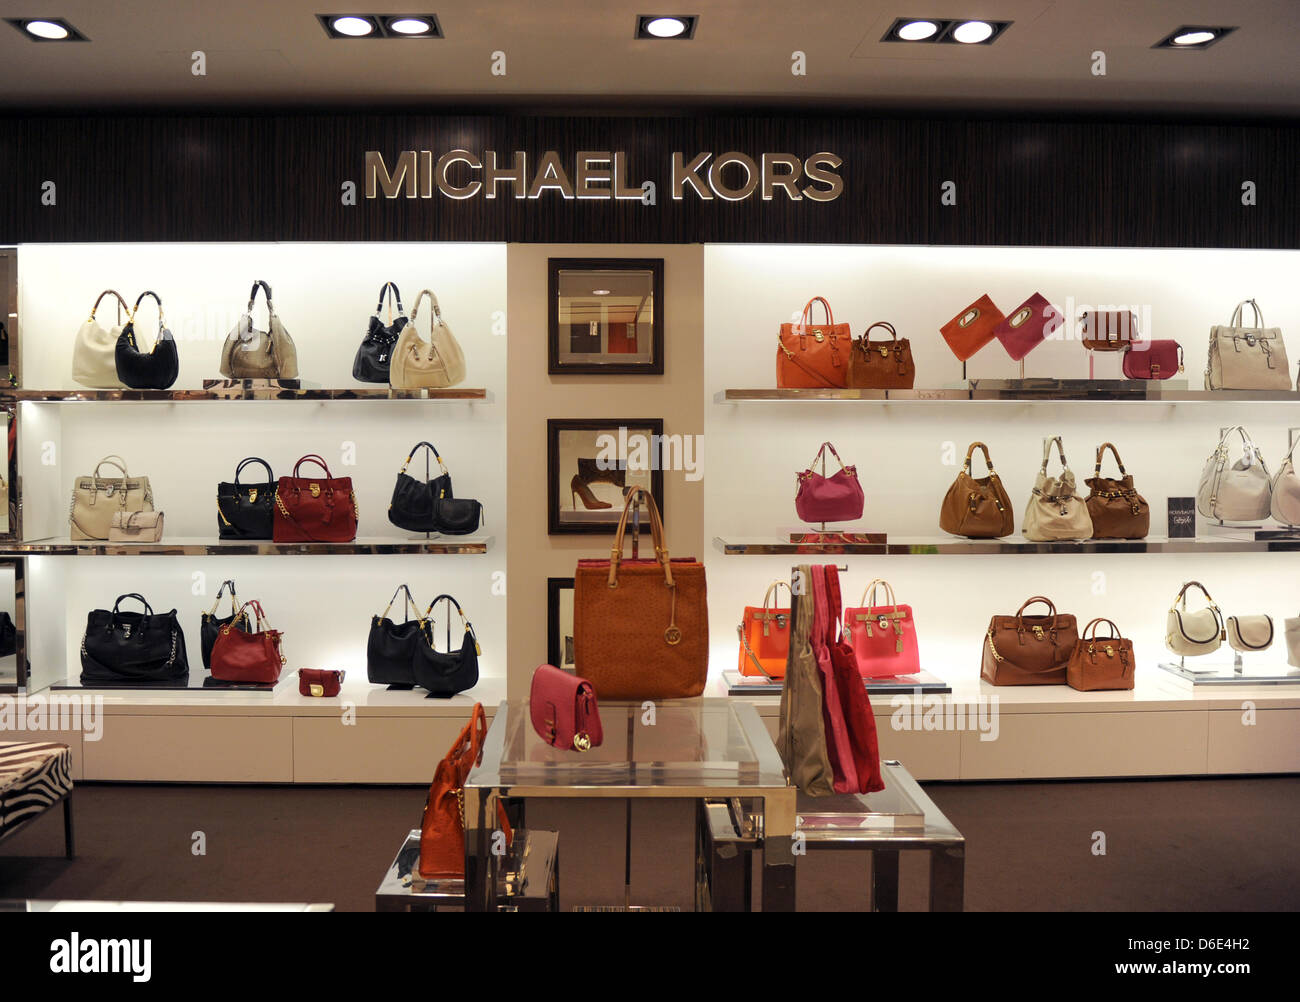 Handbag of luxury brand Michael Kors, pictured on 18 January 2012 the shopping center Galeries Lafayette in Berlin, - Stock Image